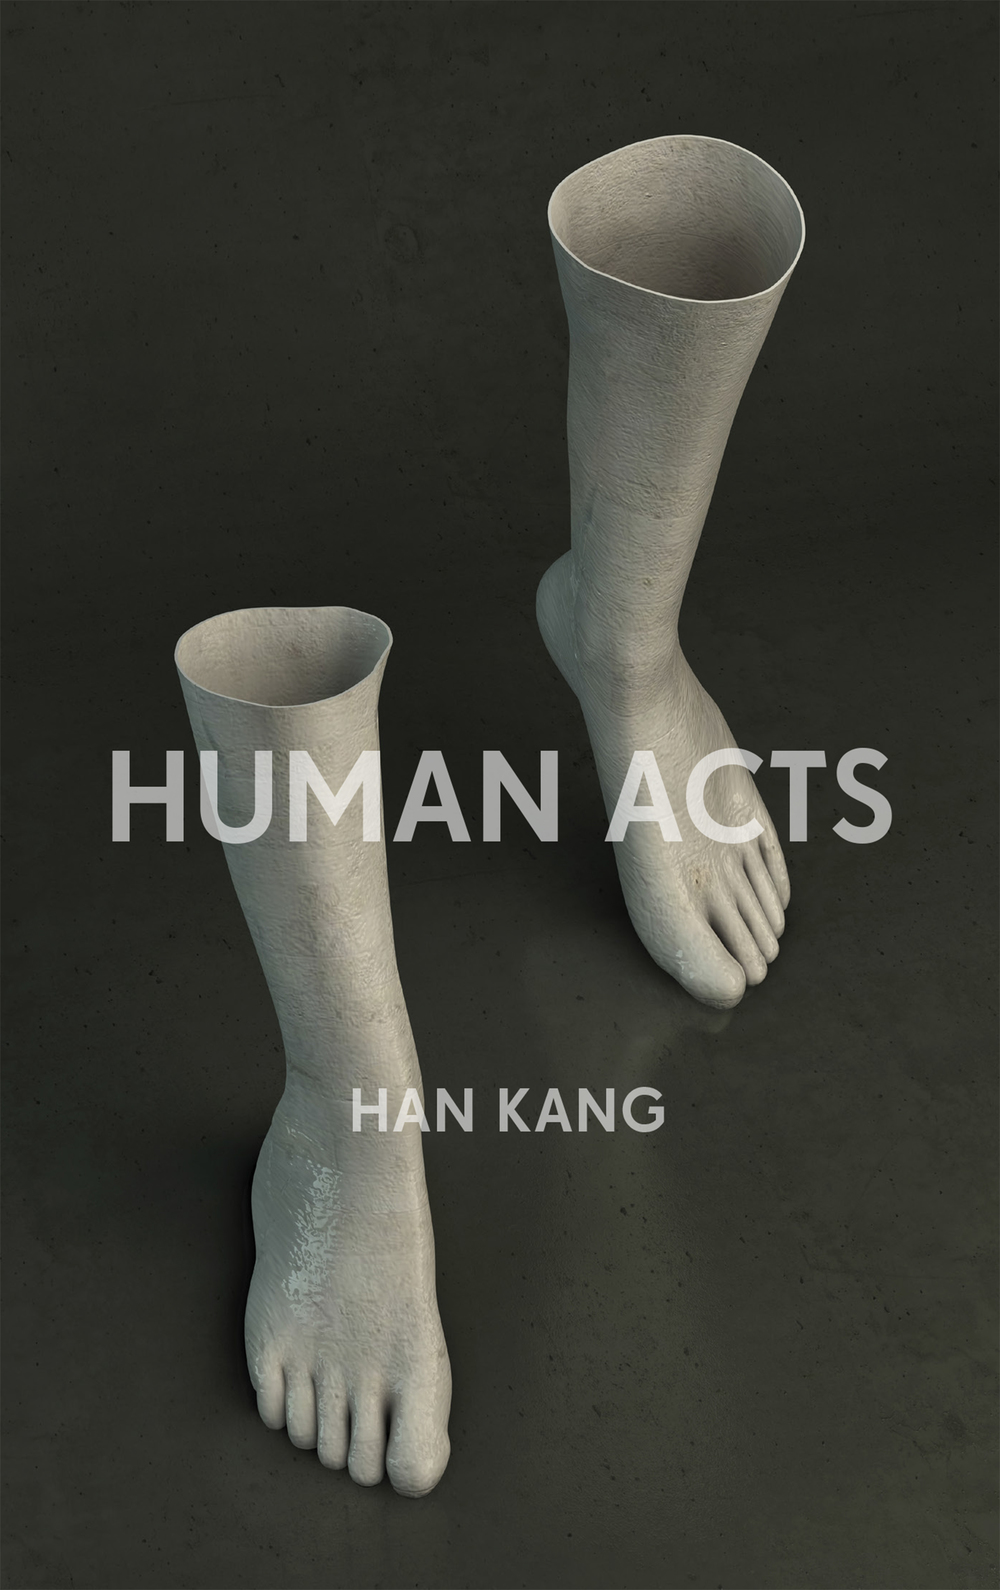 human acts A human act is an action that is considered to be carried out voluntarily, whereas an act of man is an involuntary action the distinctions and nuances between an act of man and a human act.